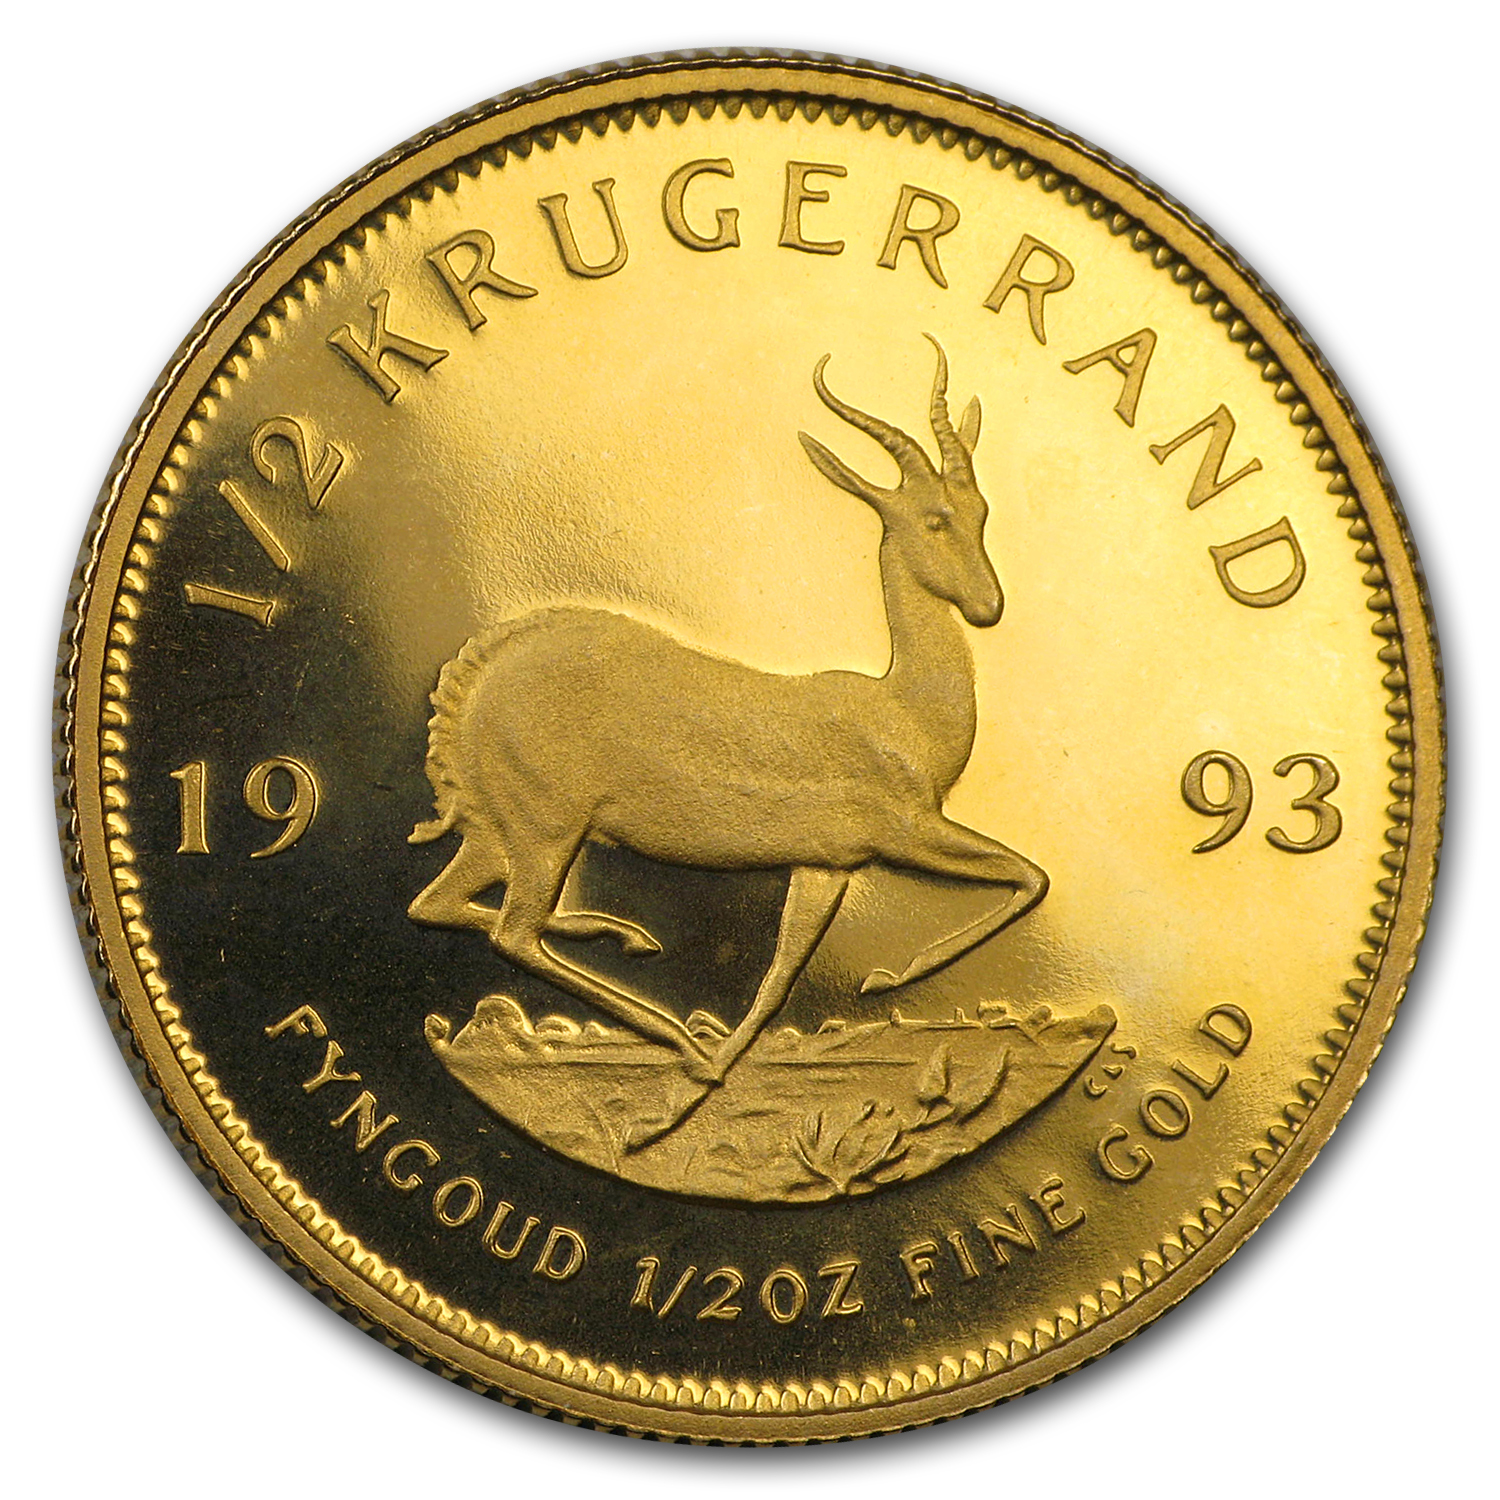 1993 1/2 oz Gold South African Krugerrand (Proof)